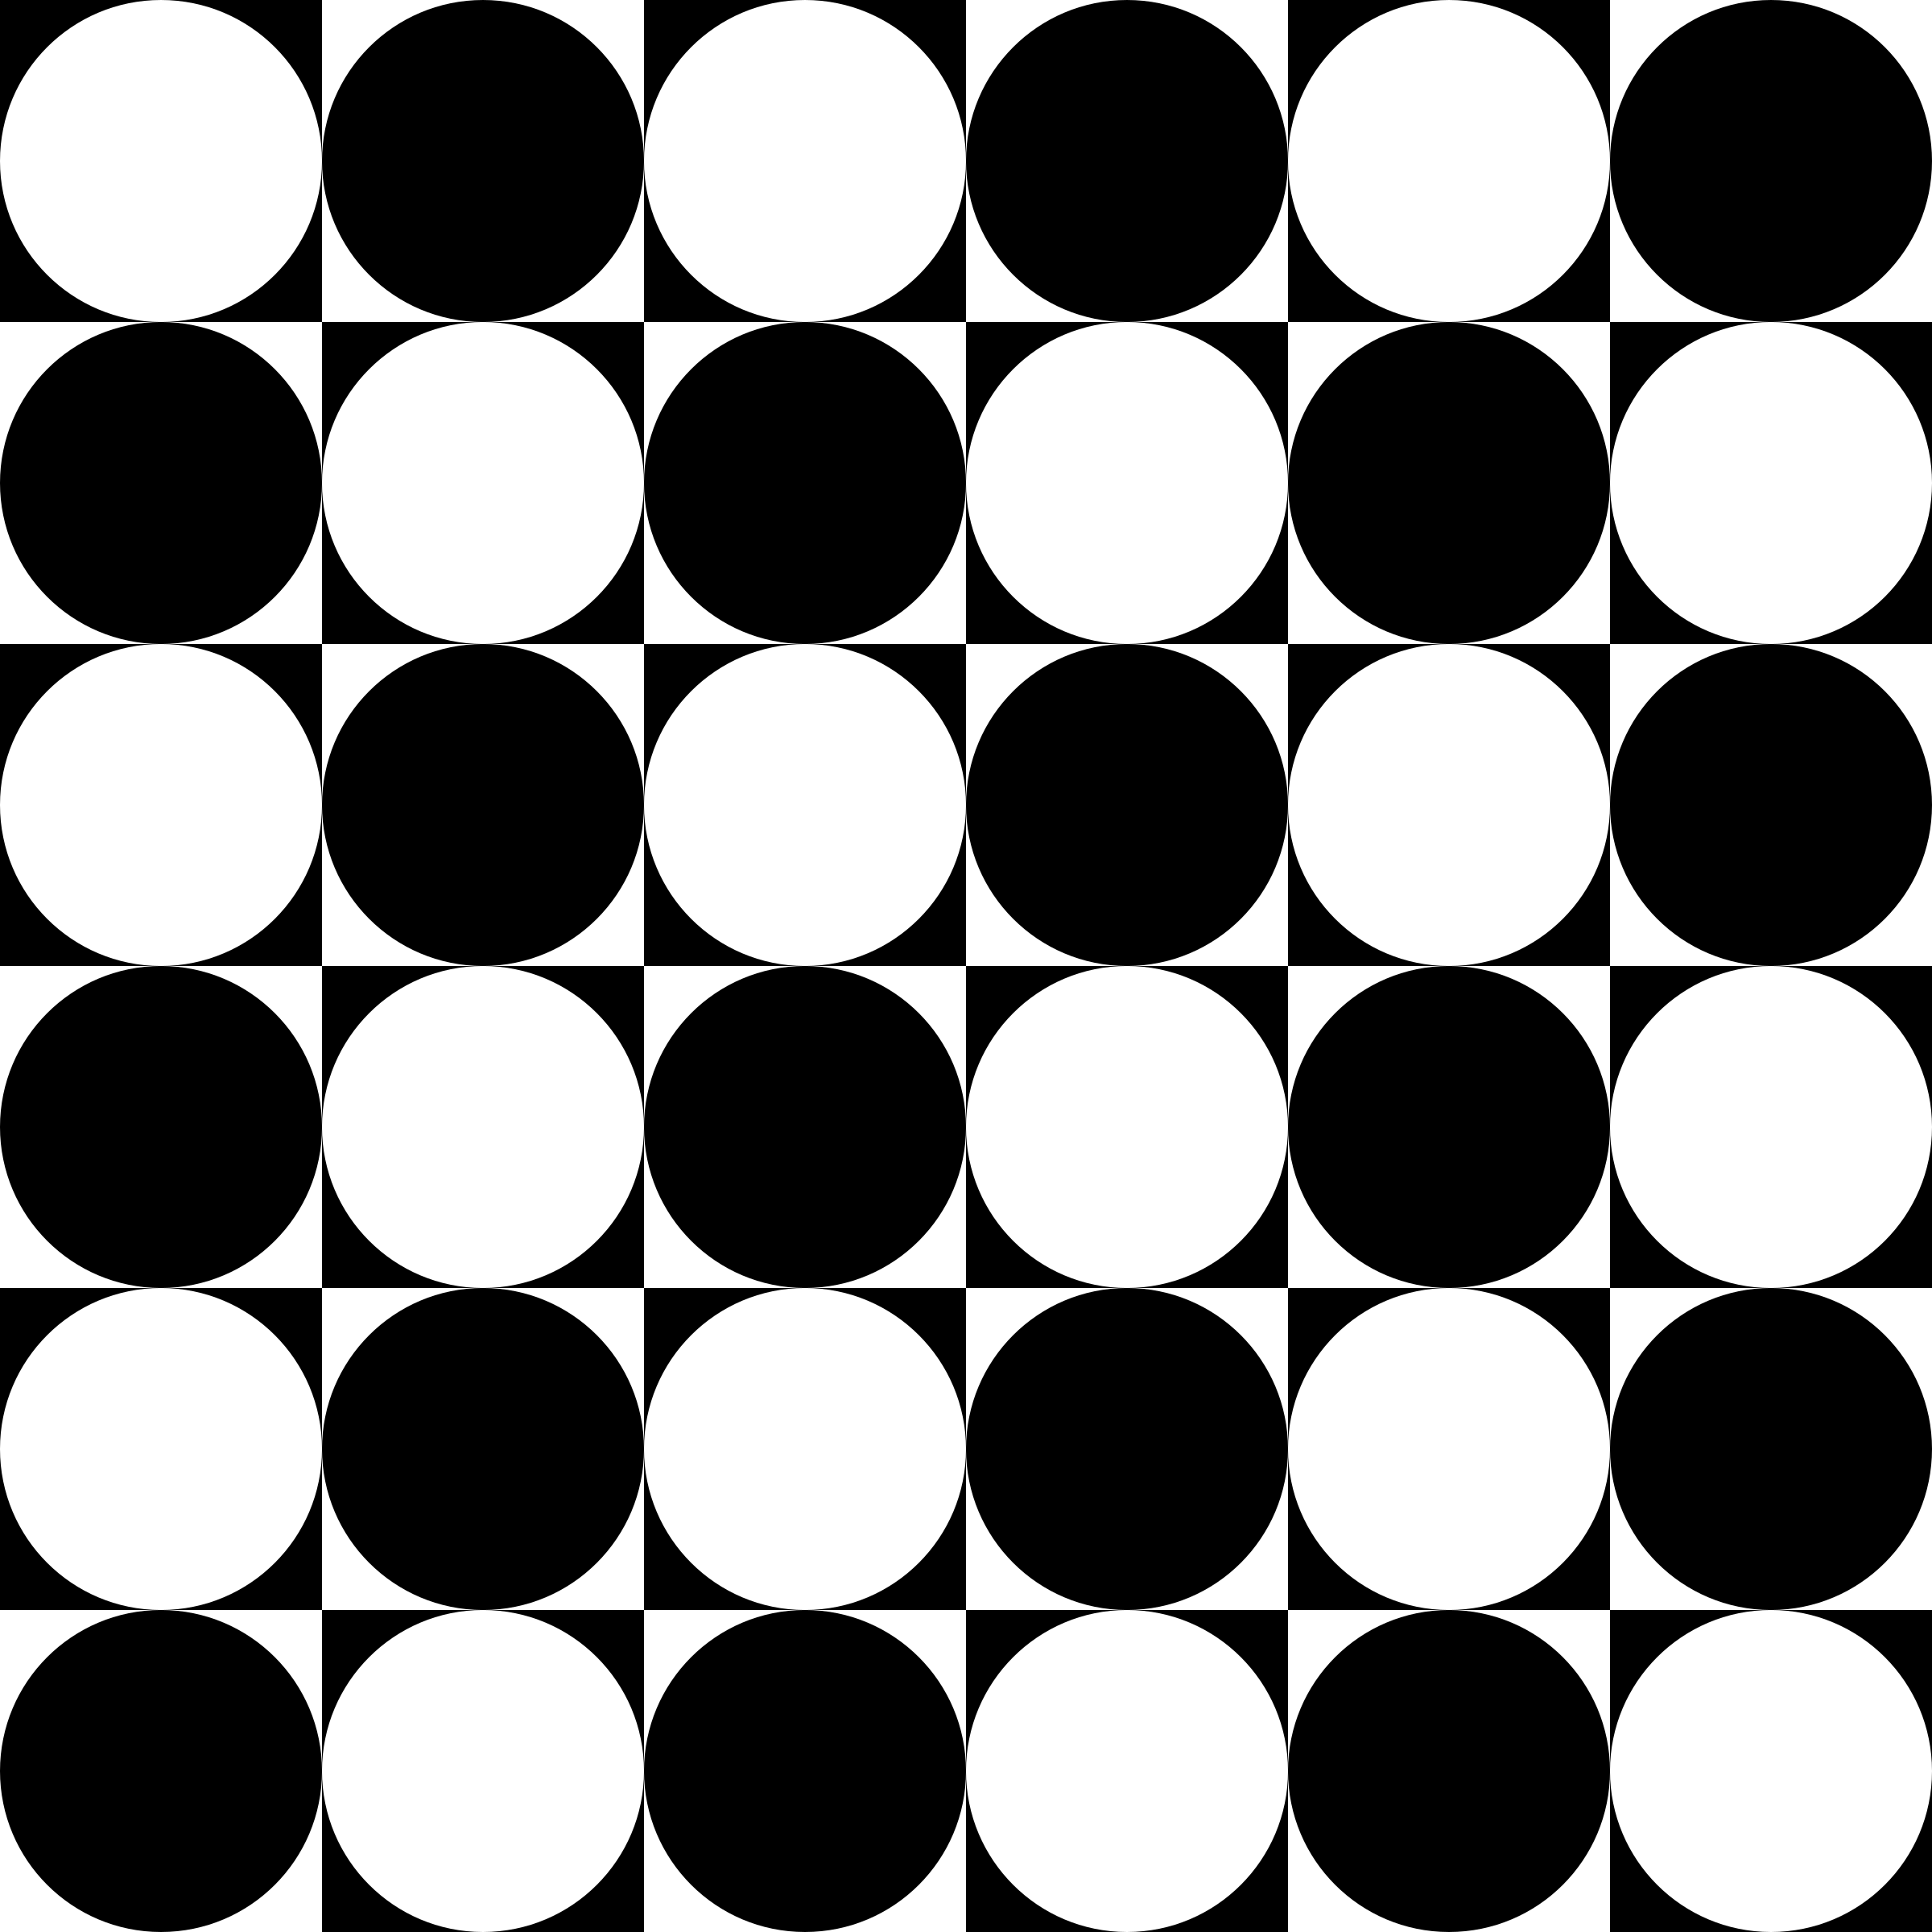 circles inside chessboard by 10binary